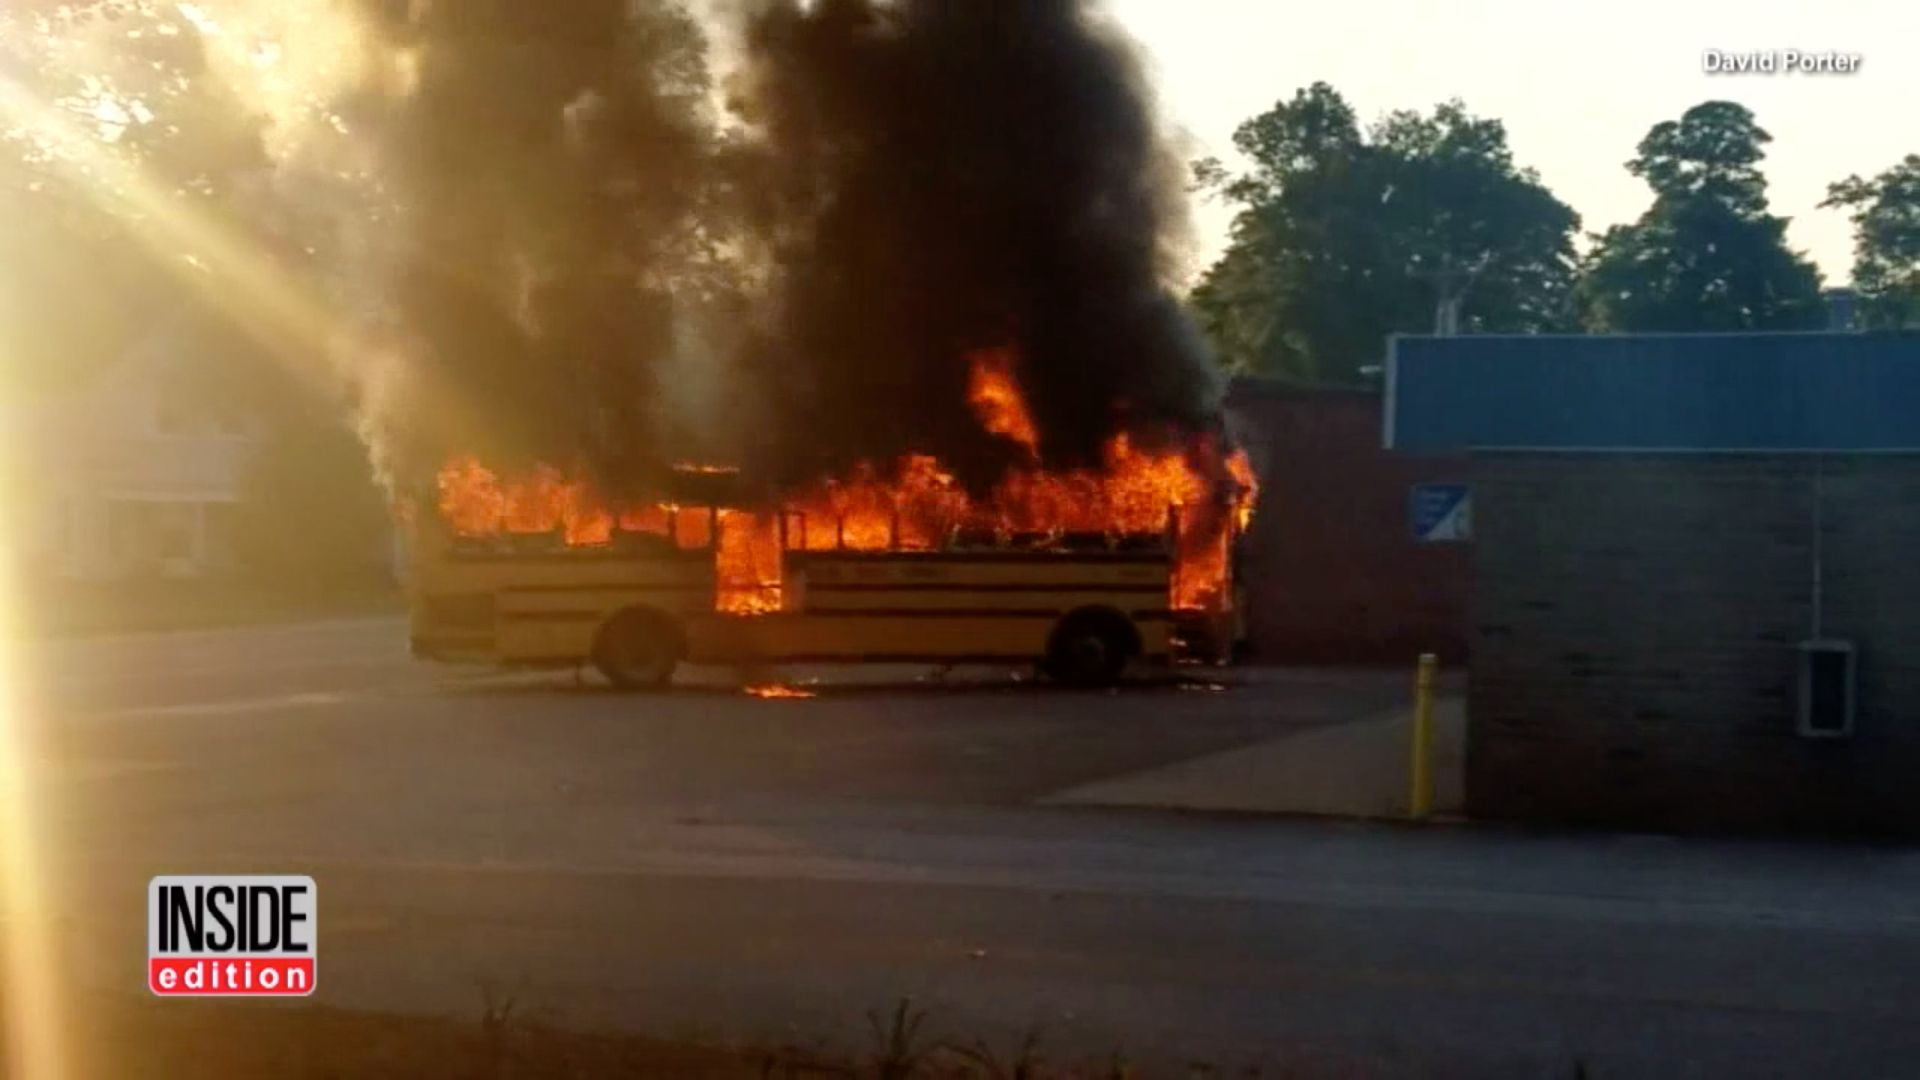 A South Carolina school bus driver is being credited with saving 56 students just before the vehicle burst into flames